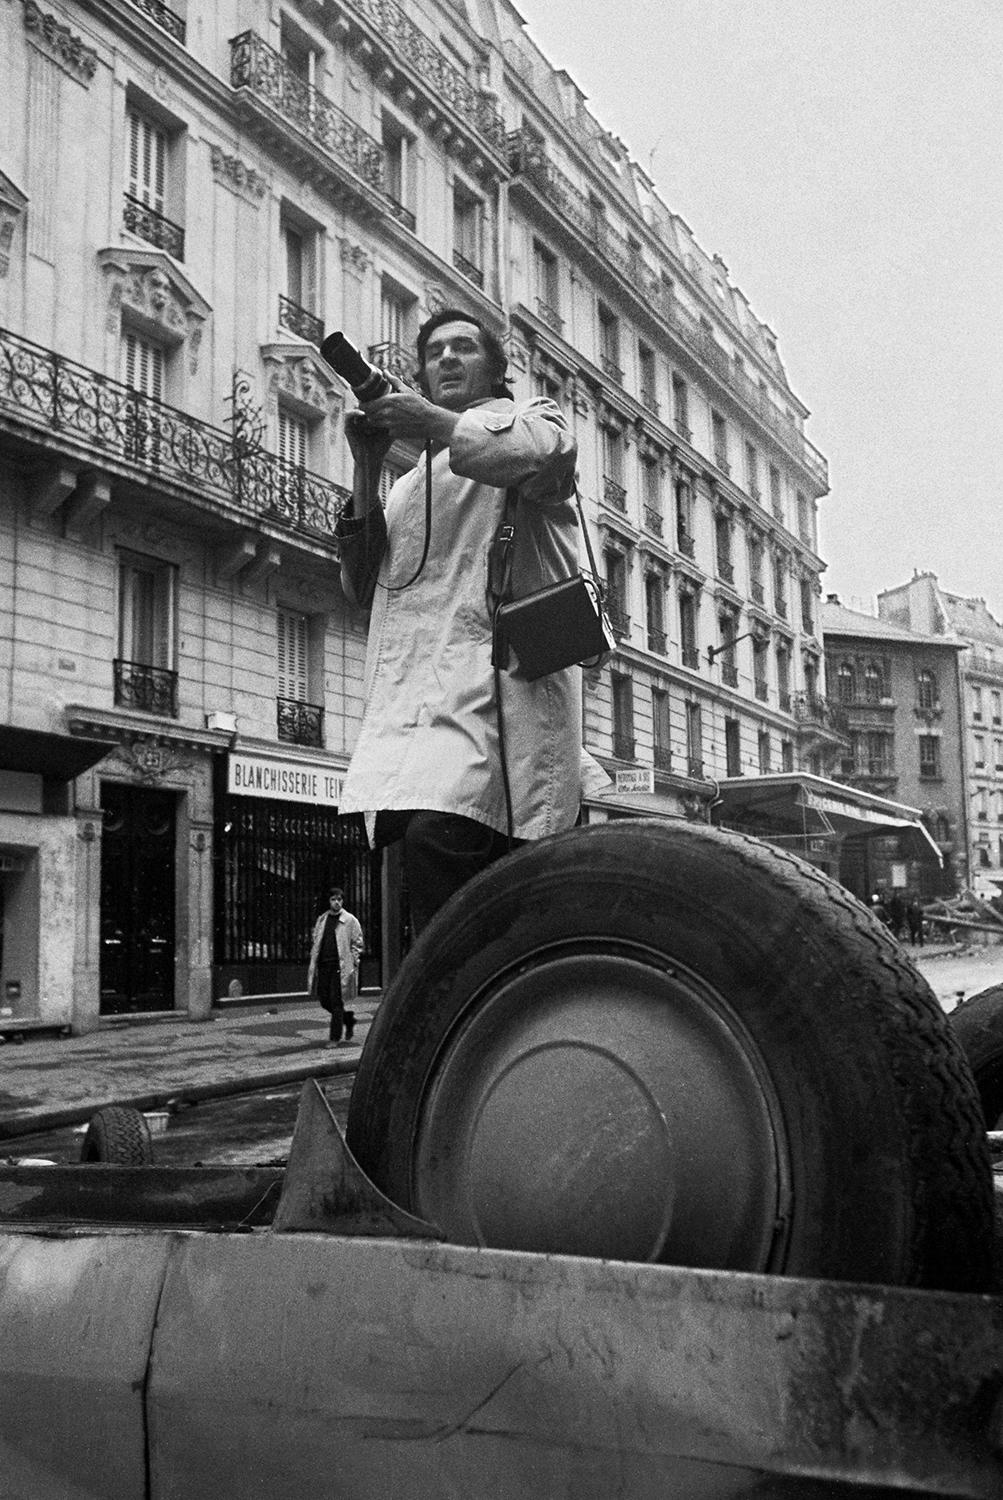 <p>Gökşin Sipahioğlu stands on Rue Gay-Lussac the day after the May 10, 1968, clashes between students and police in Paris. (Photo: Document Sipahioglu Archive) </p>